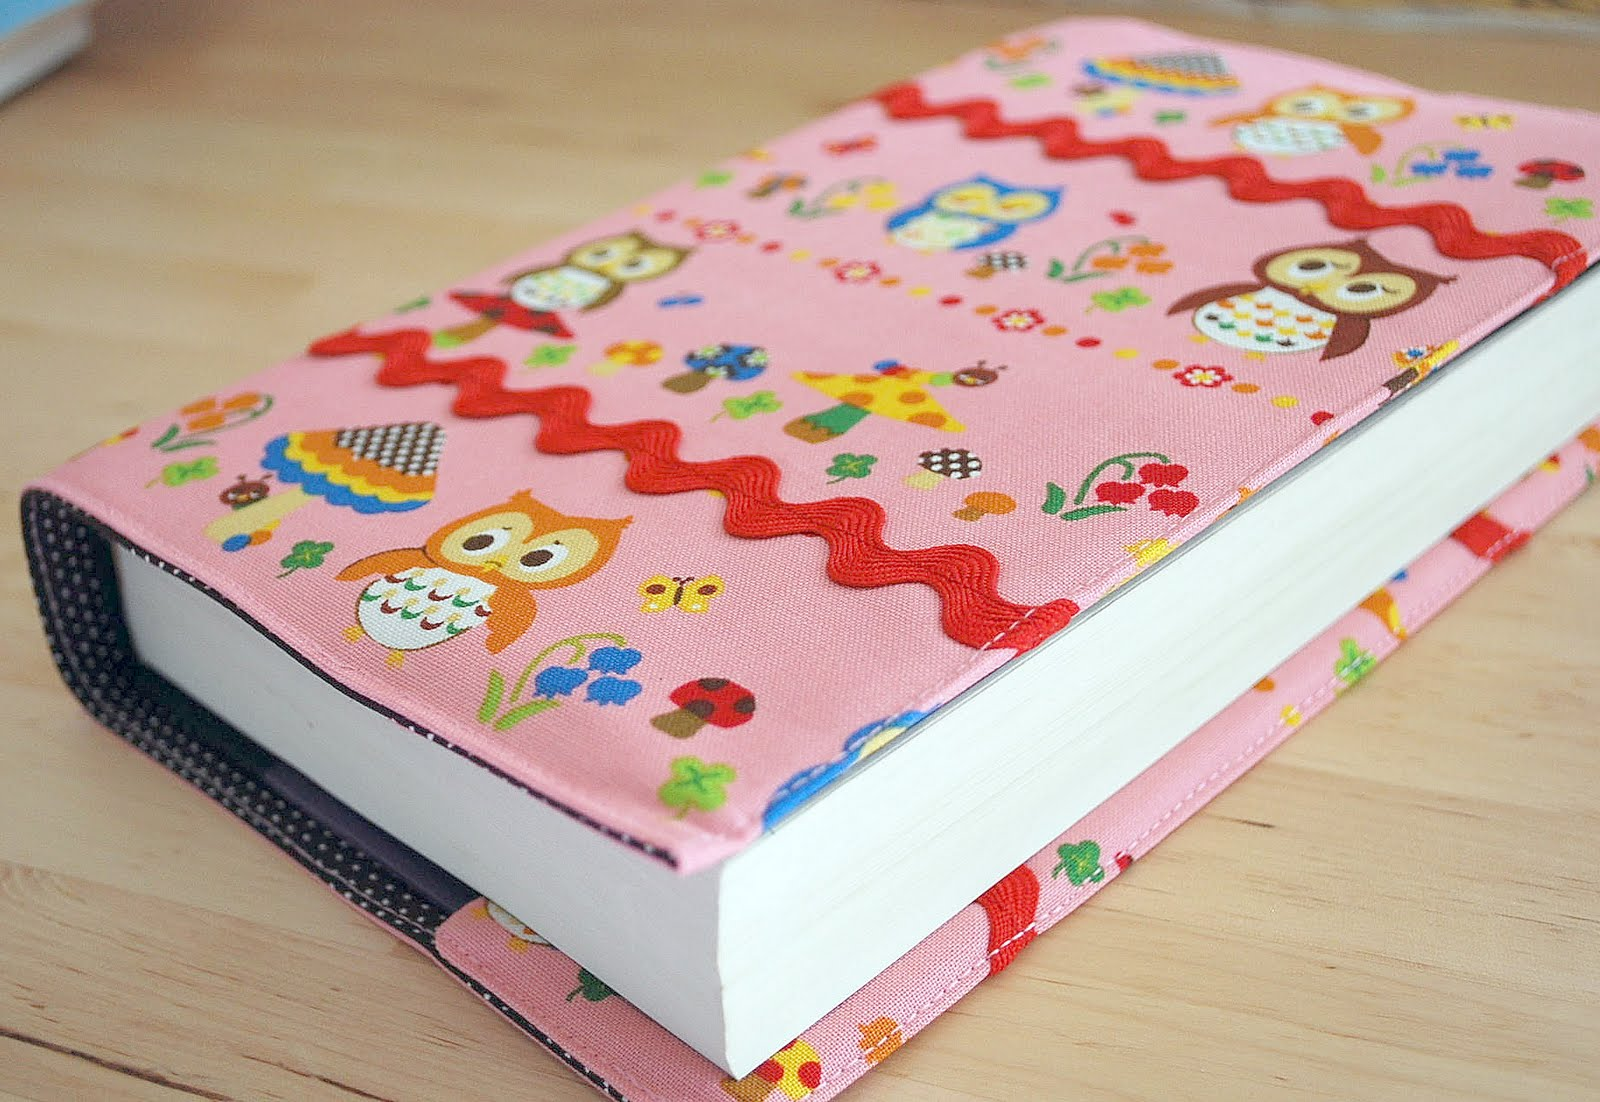 All Awesome Links!: Sew a fabric book cover